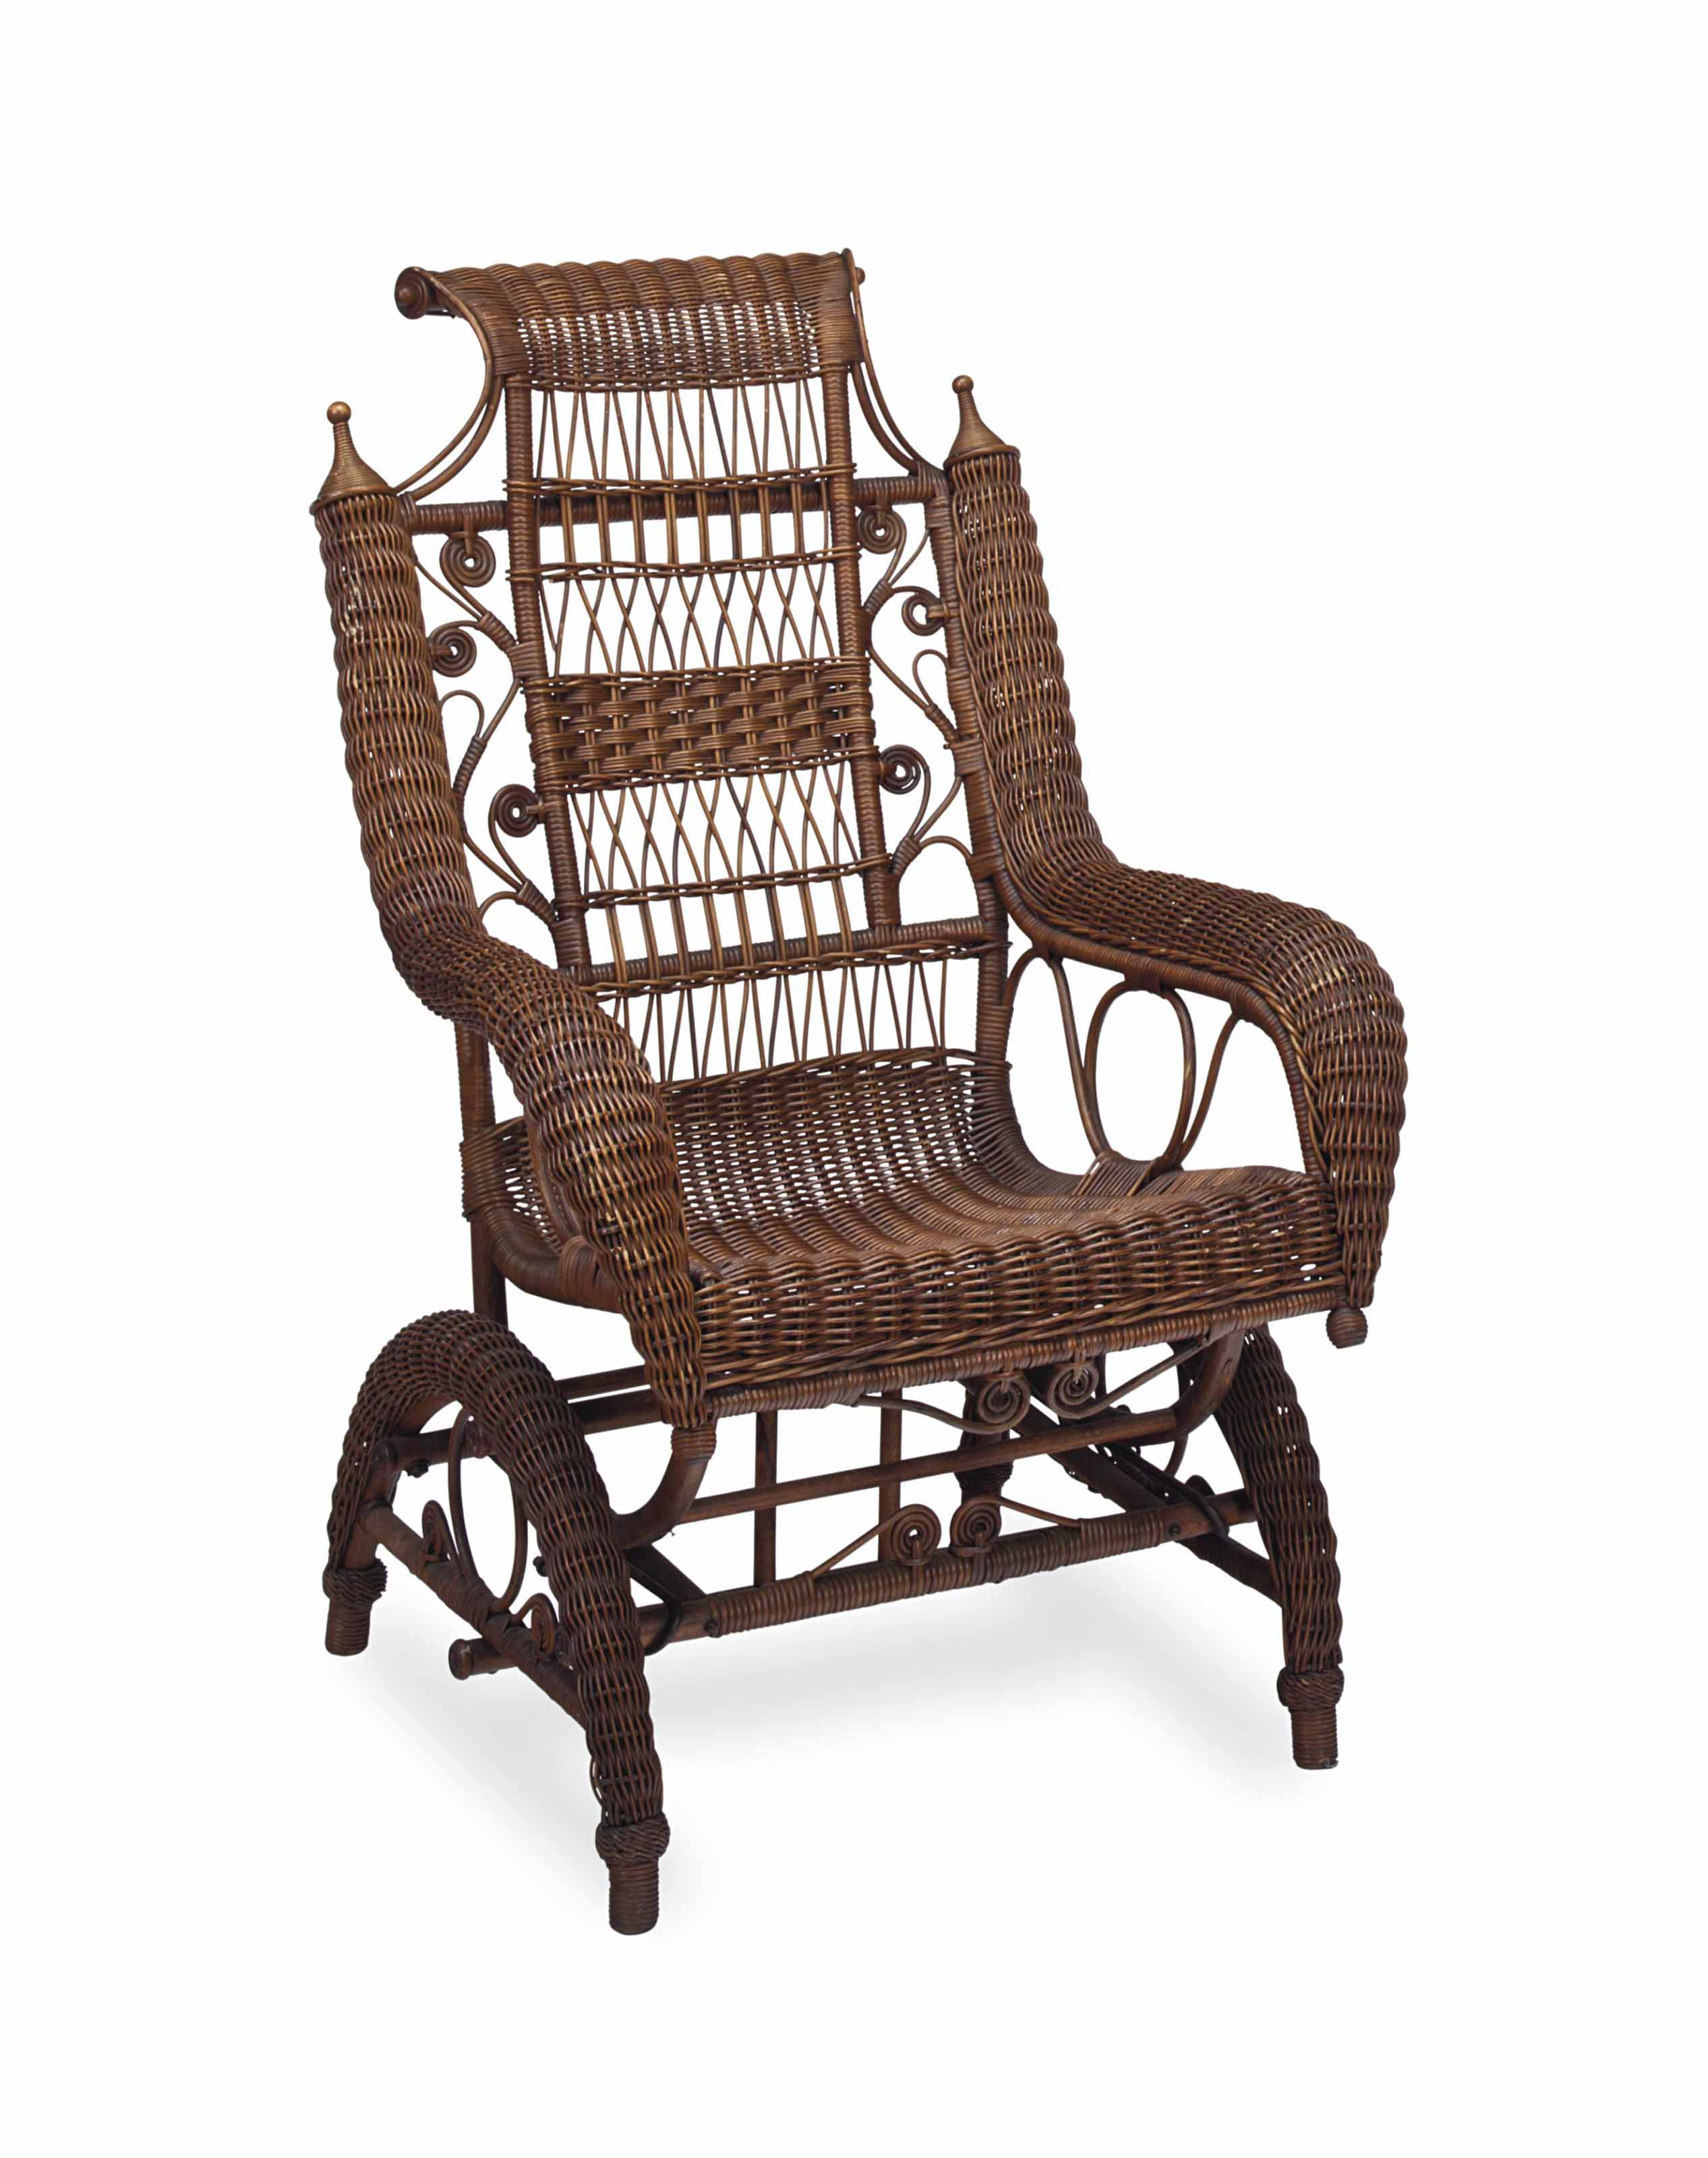 A VICTORIAN WICKER ROCKING CHA